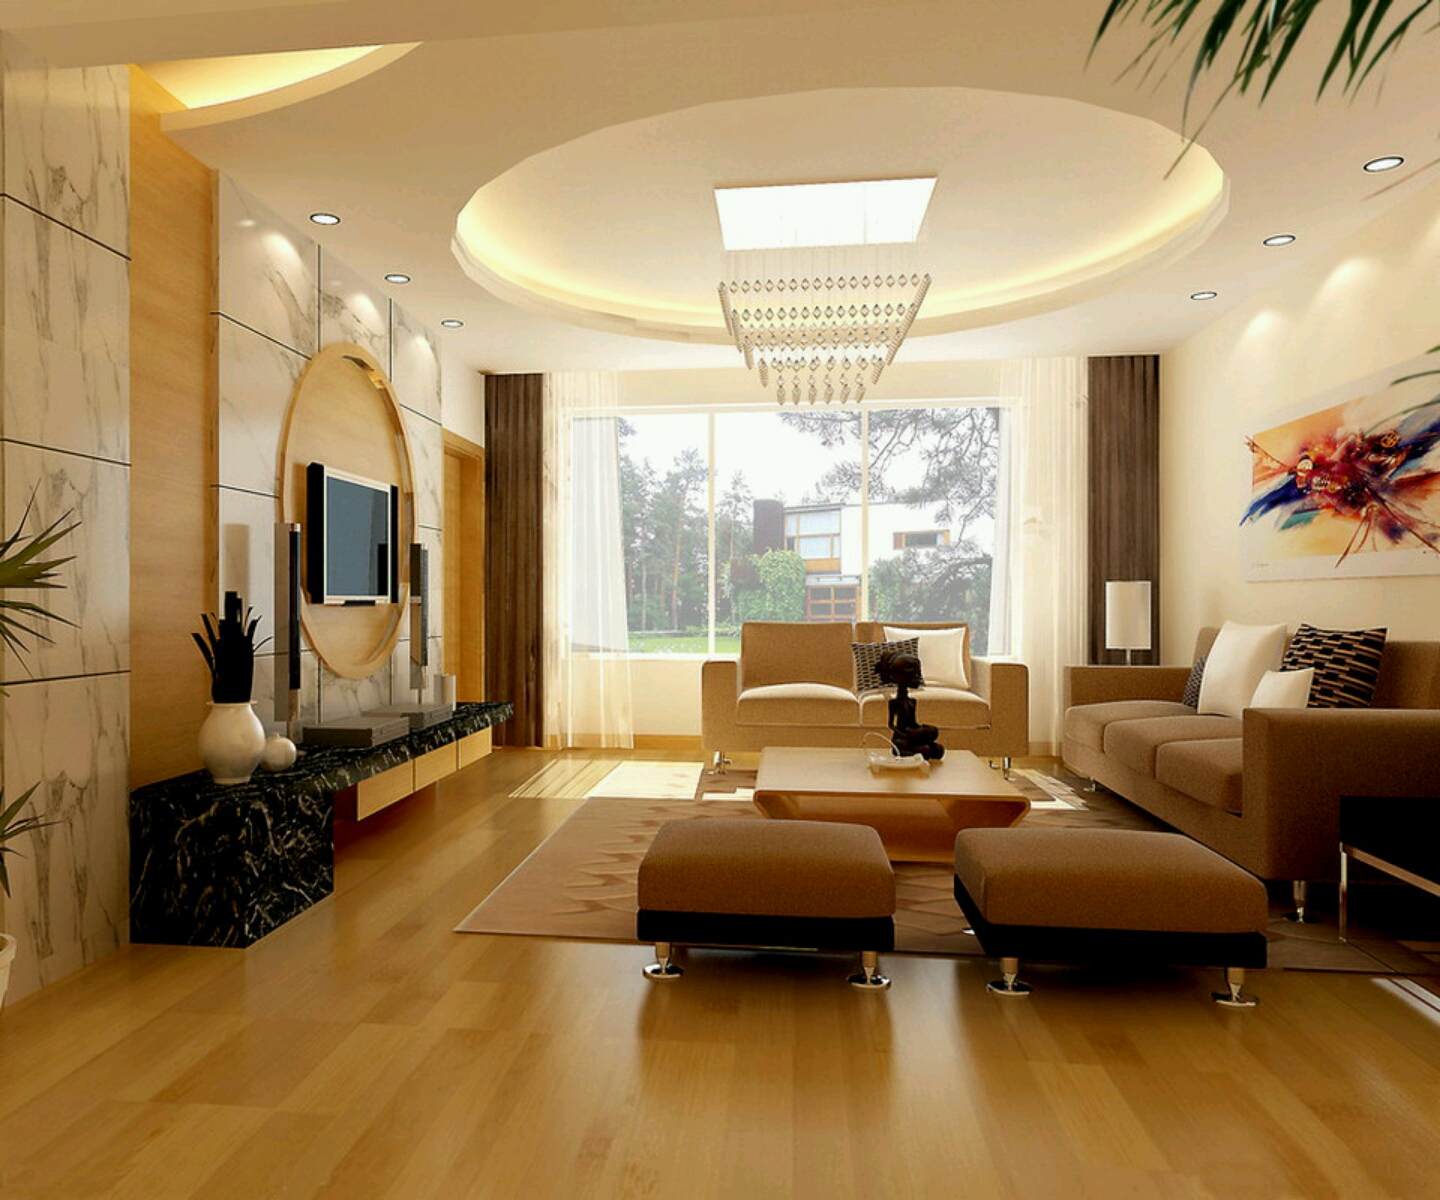 Modern interior decoration living rooms ceiling designs for Modern family room ideas